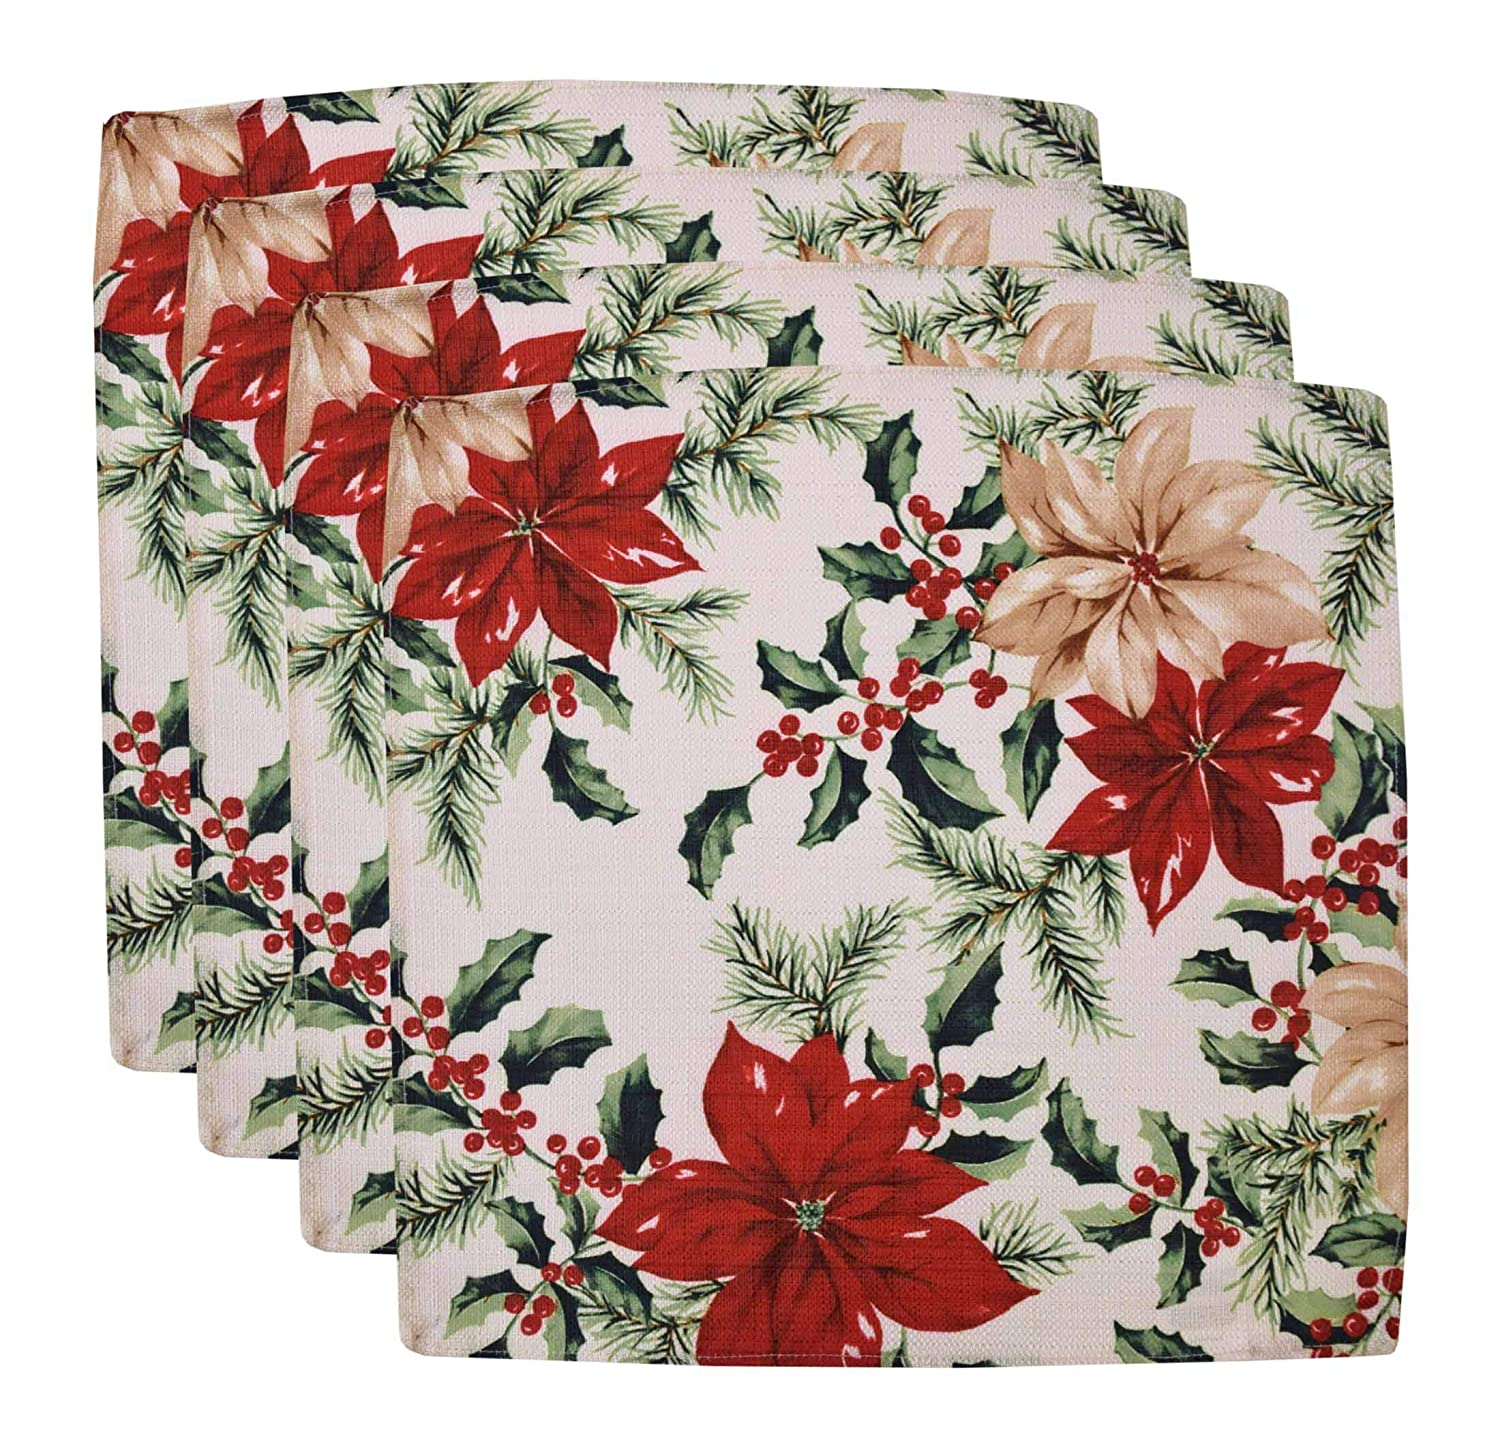 Green Holly Berry and Red Poinsettia Print Christmas Dinner Napkins - ChristmasTablescapeDecor.com